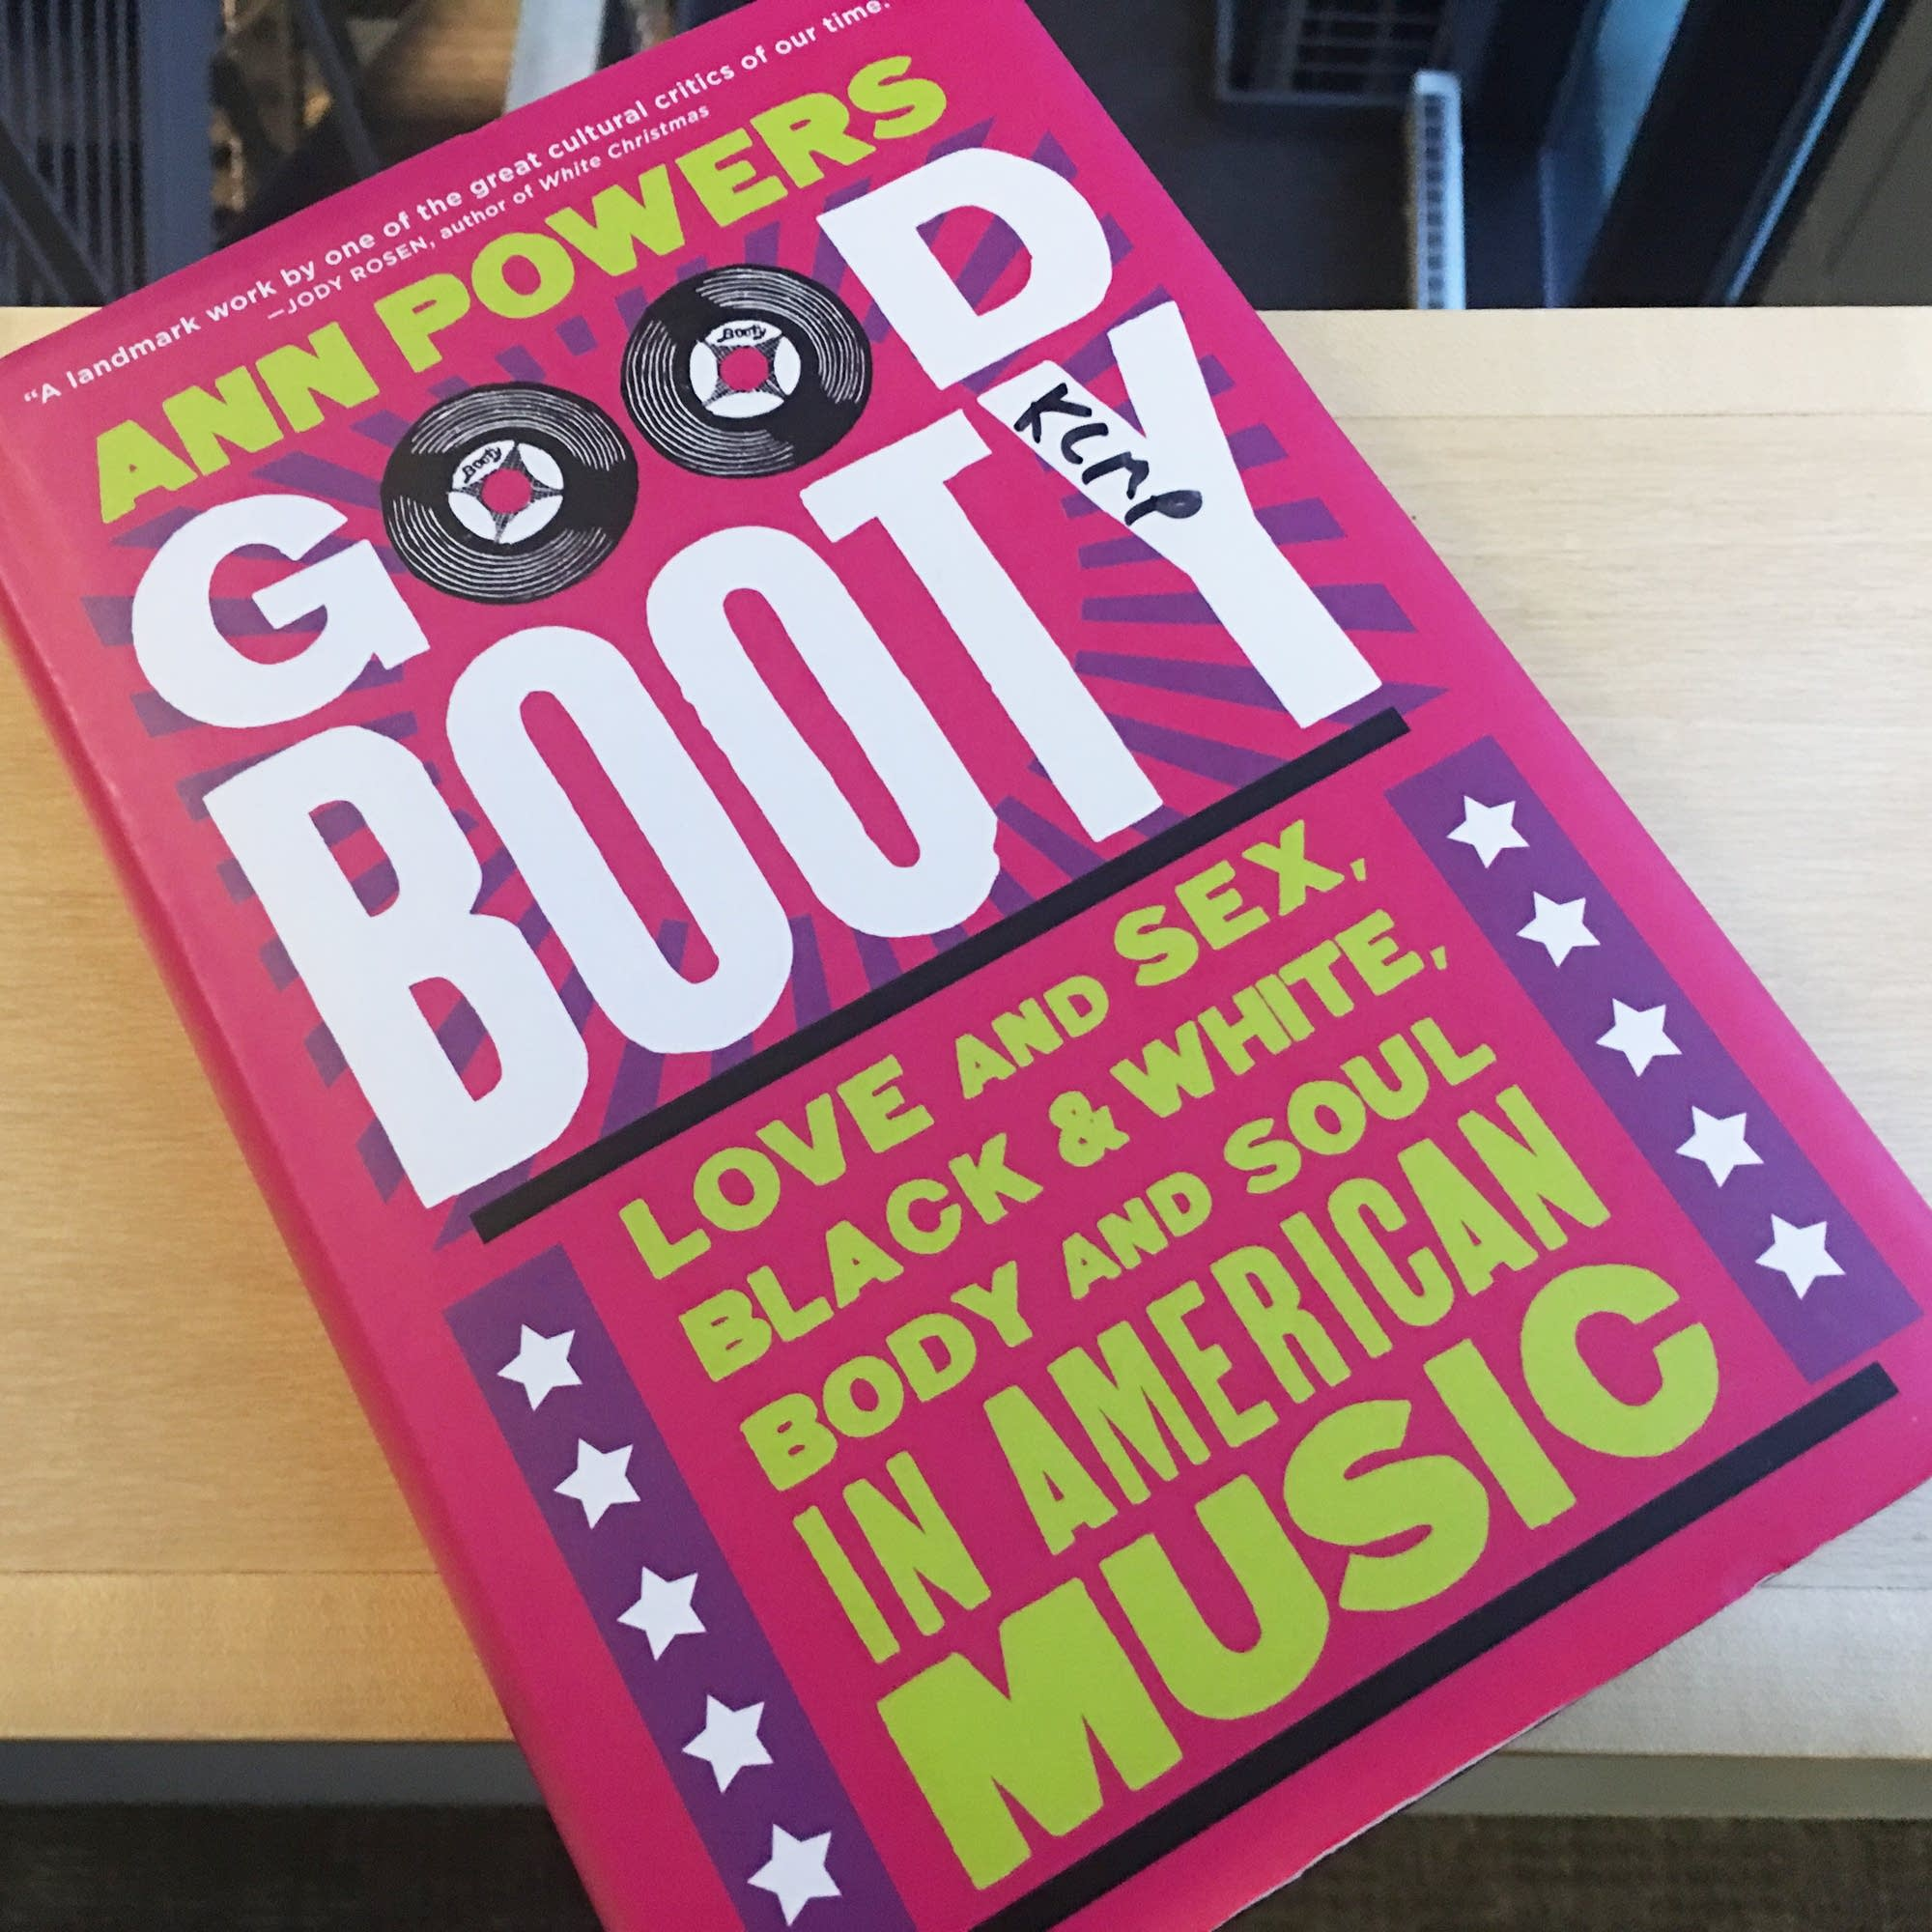 Ann Powers's book 'Good Booty.'